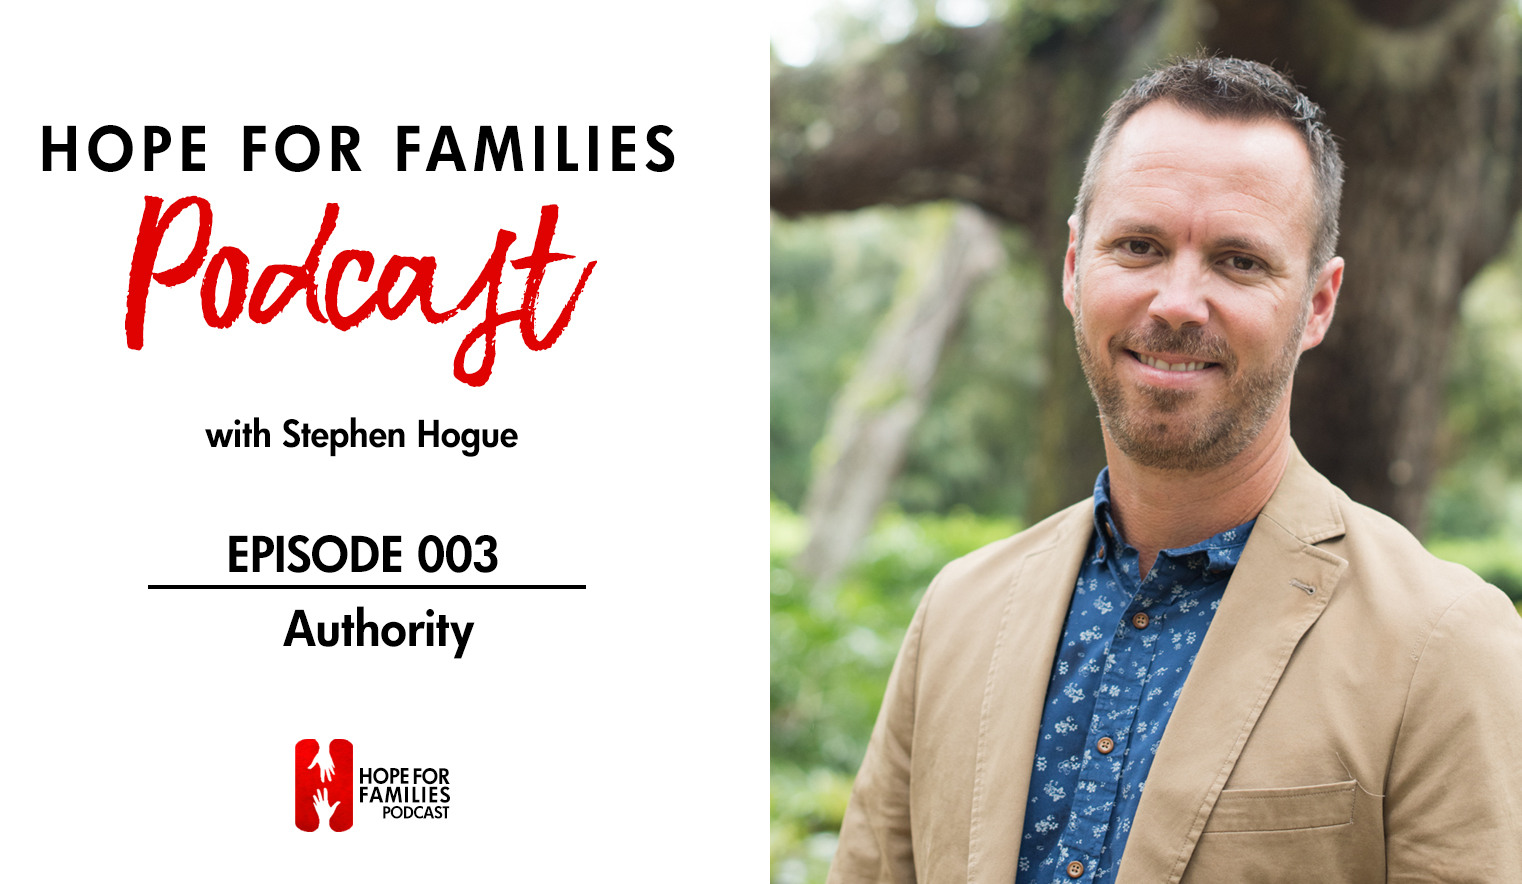 Hope For Families Podcast: Episode 003: Authority